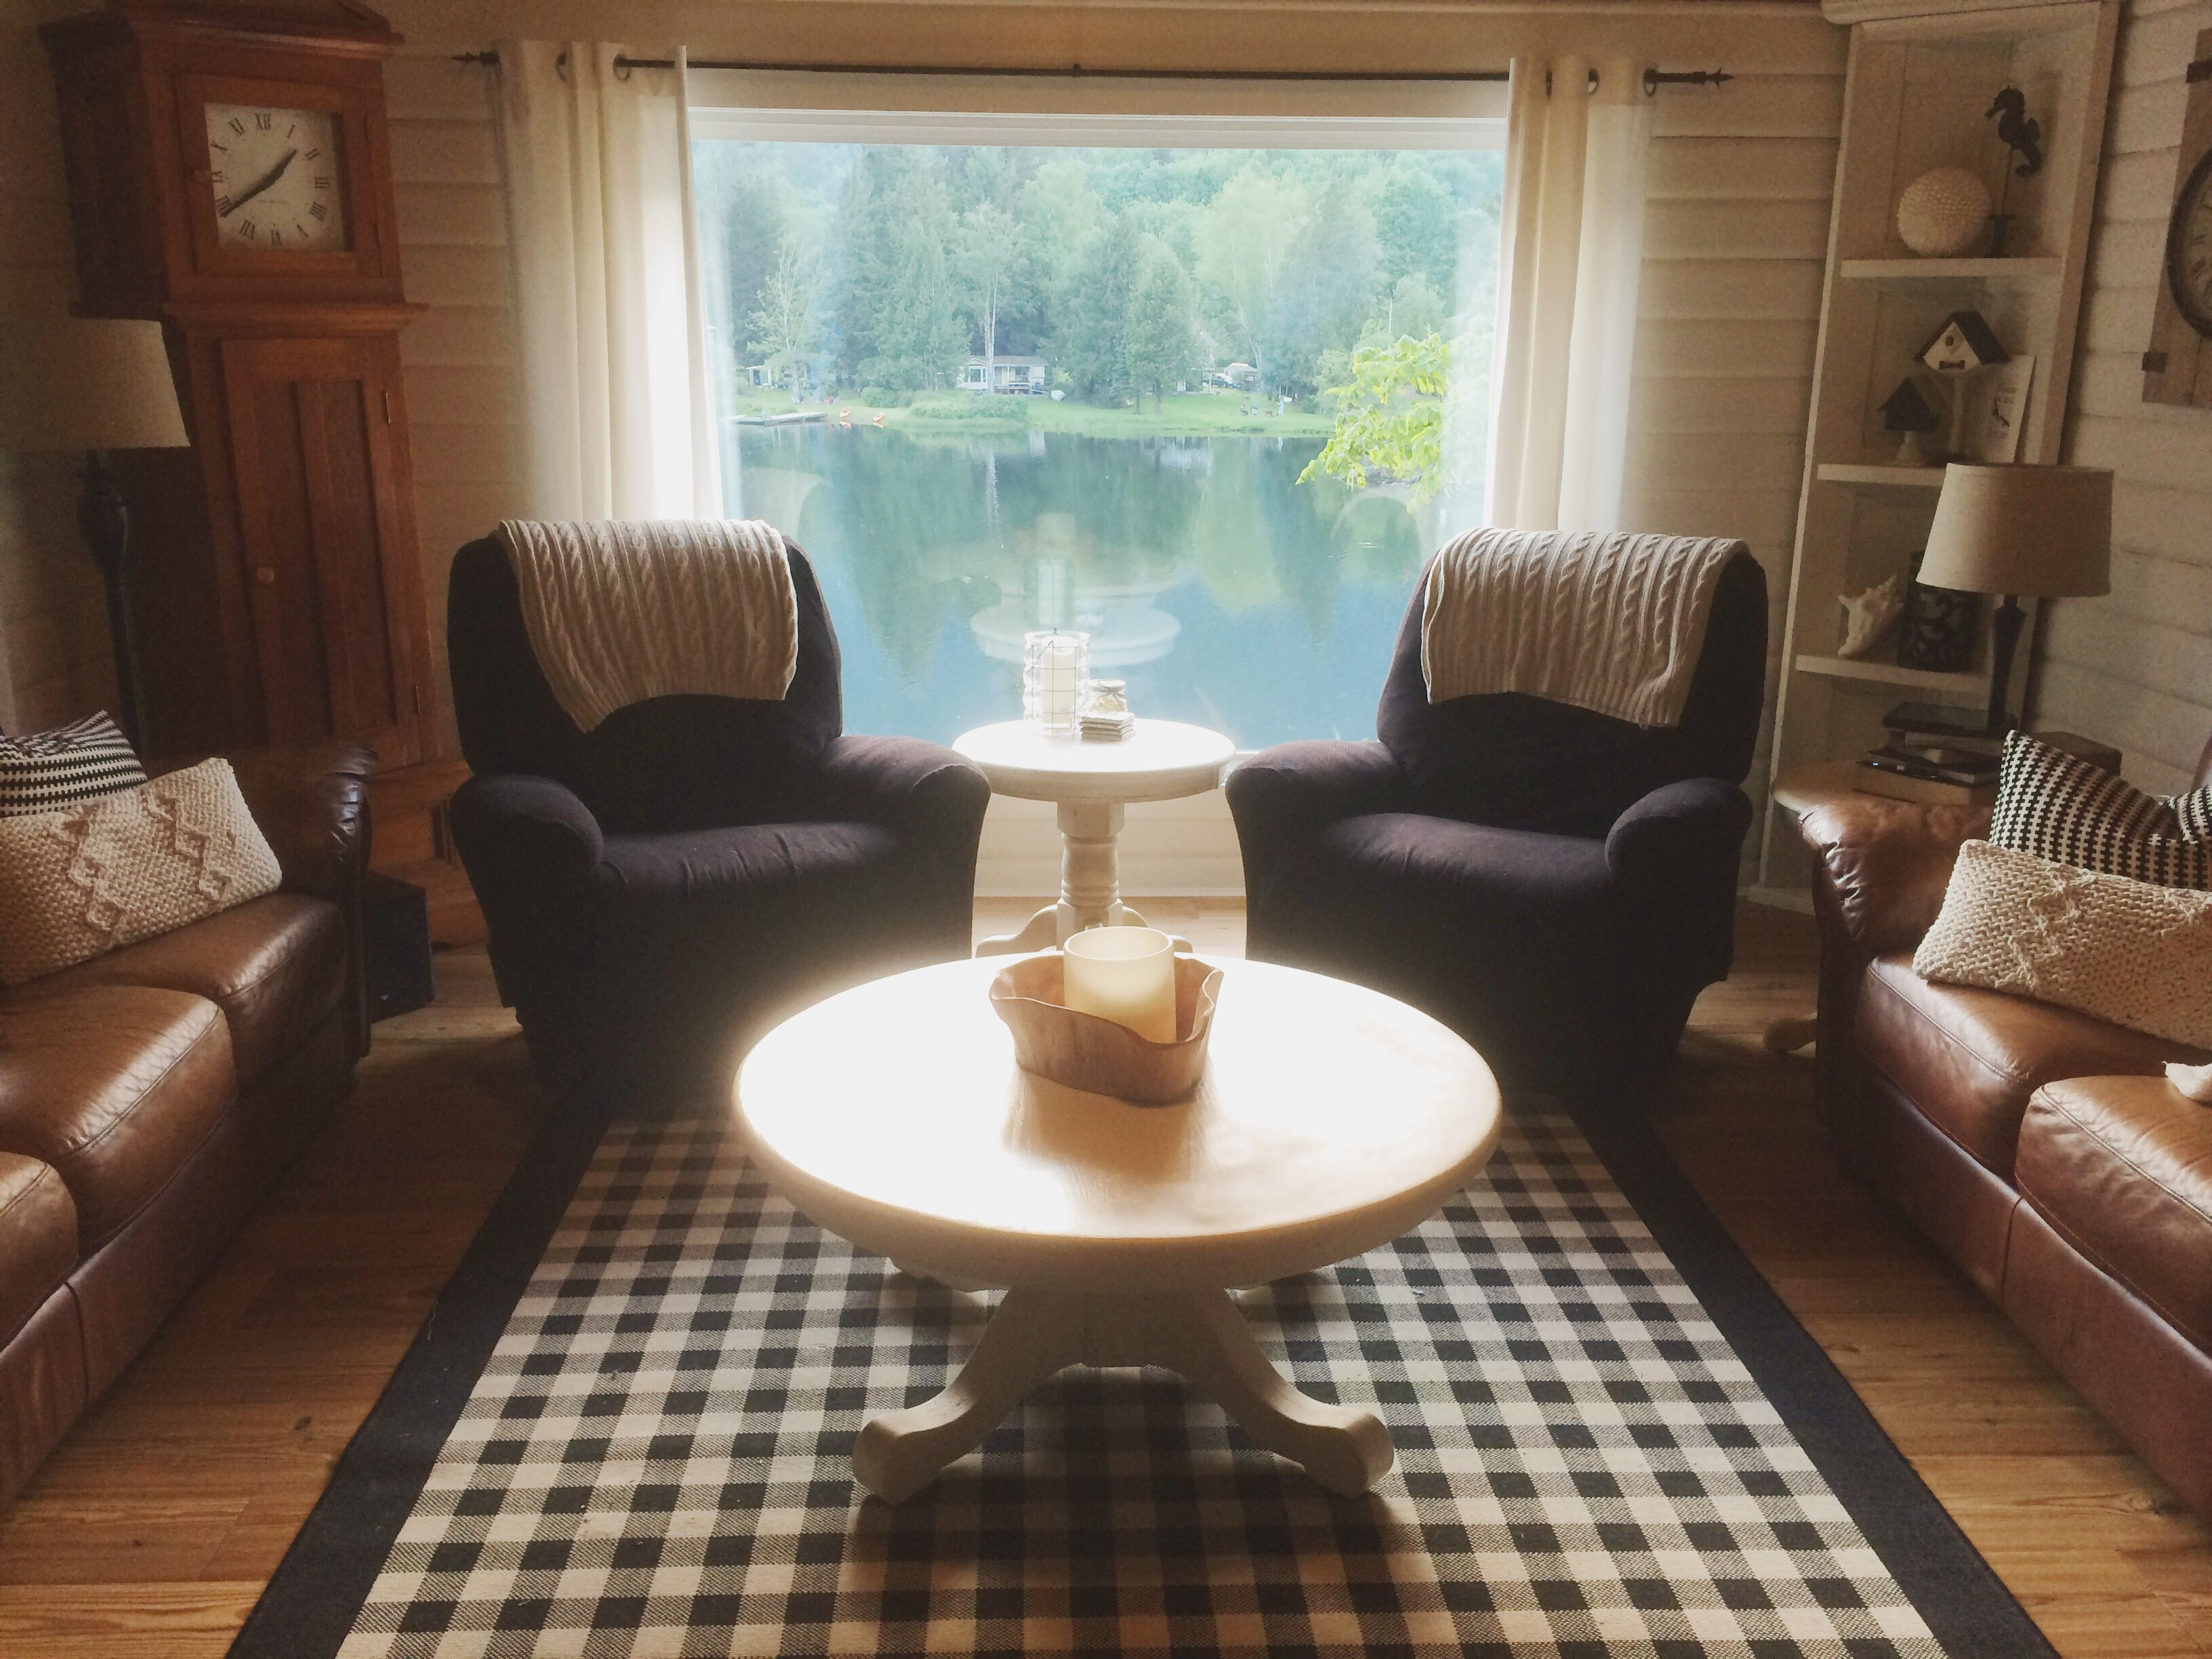 Craigslist coffee table DIY for the lakehouse living room